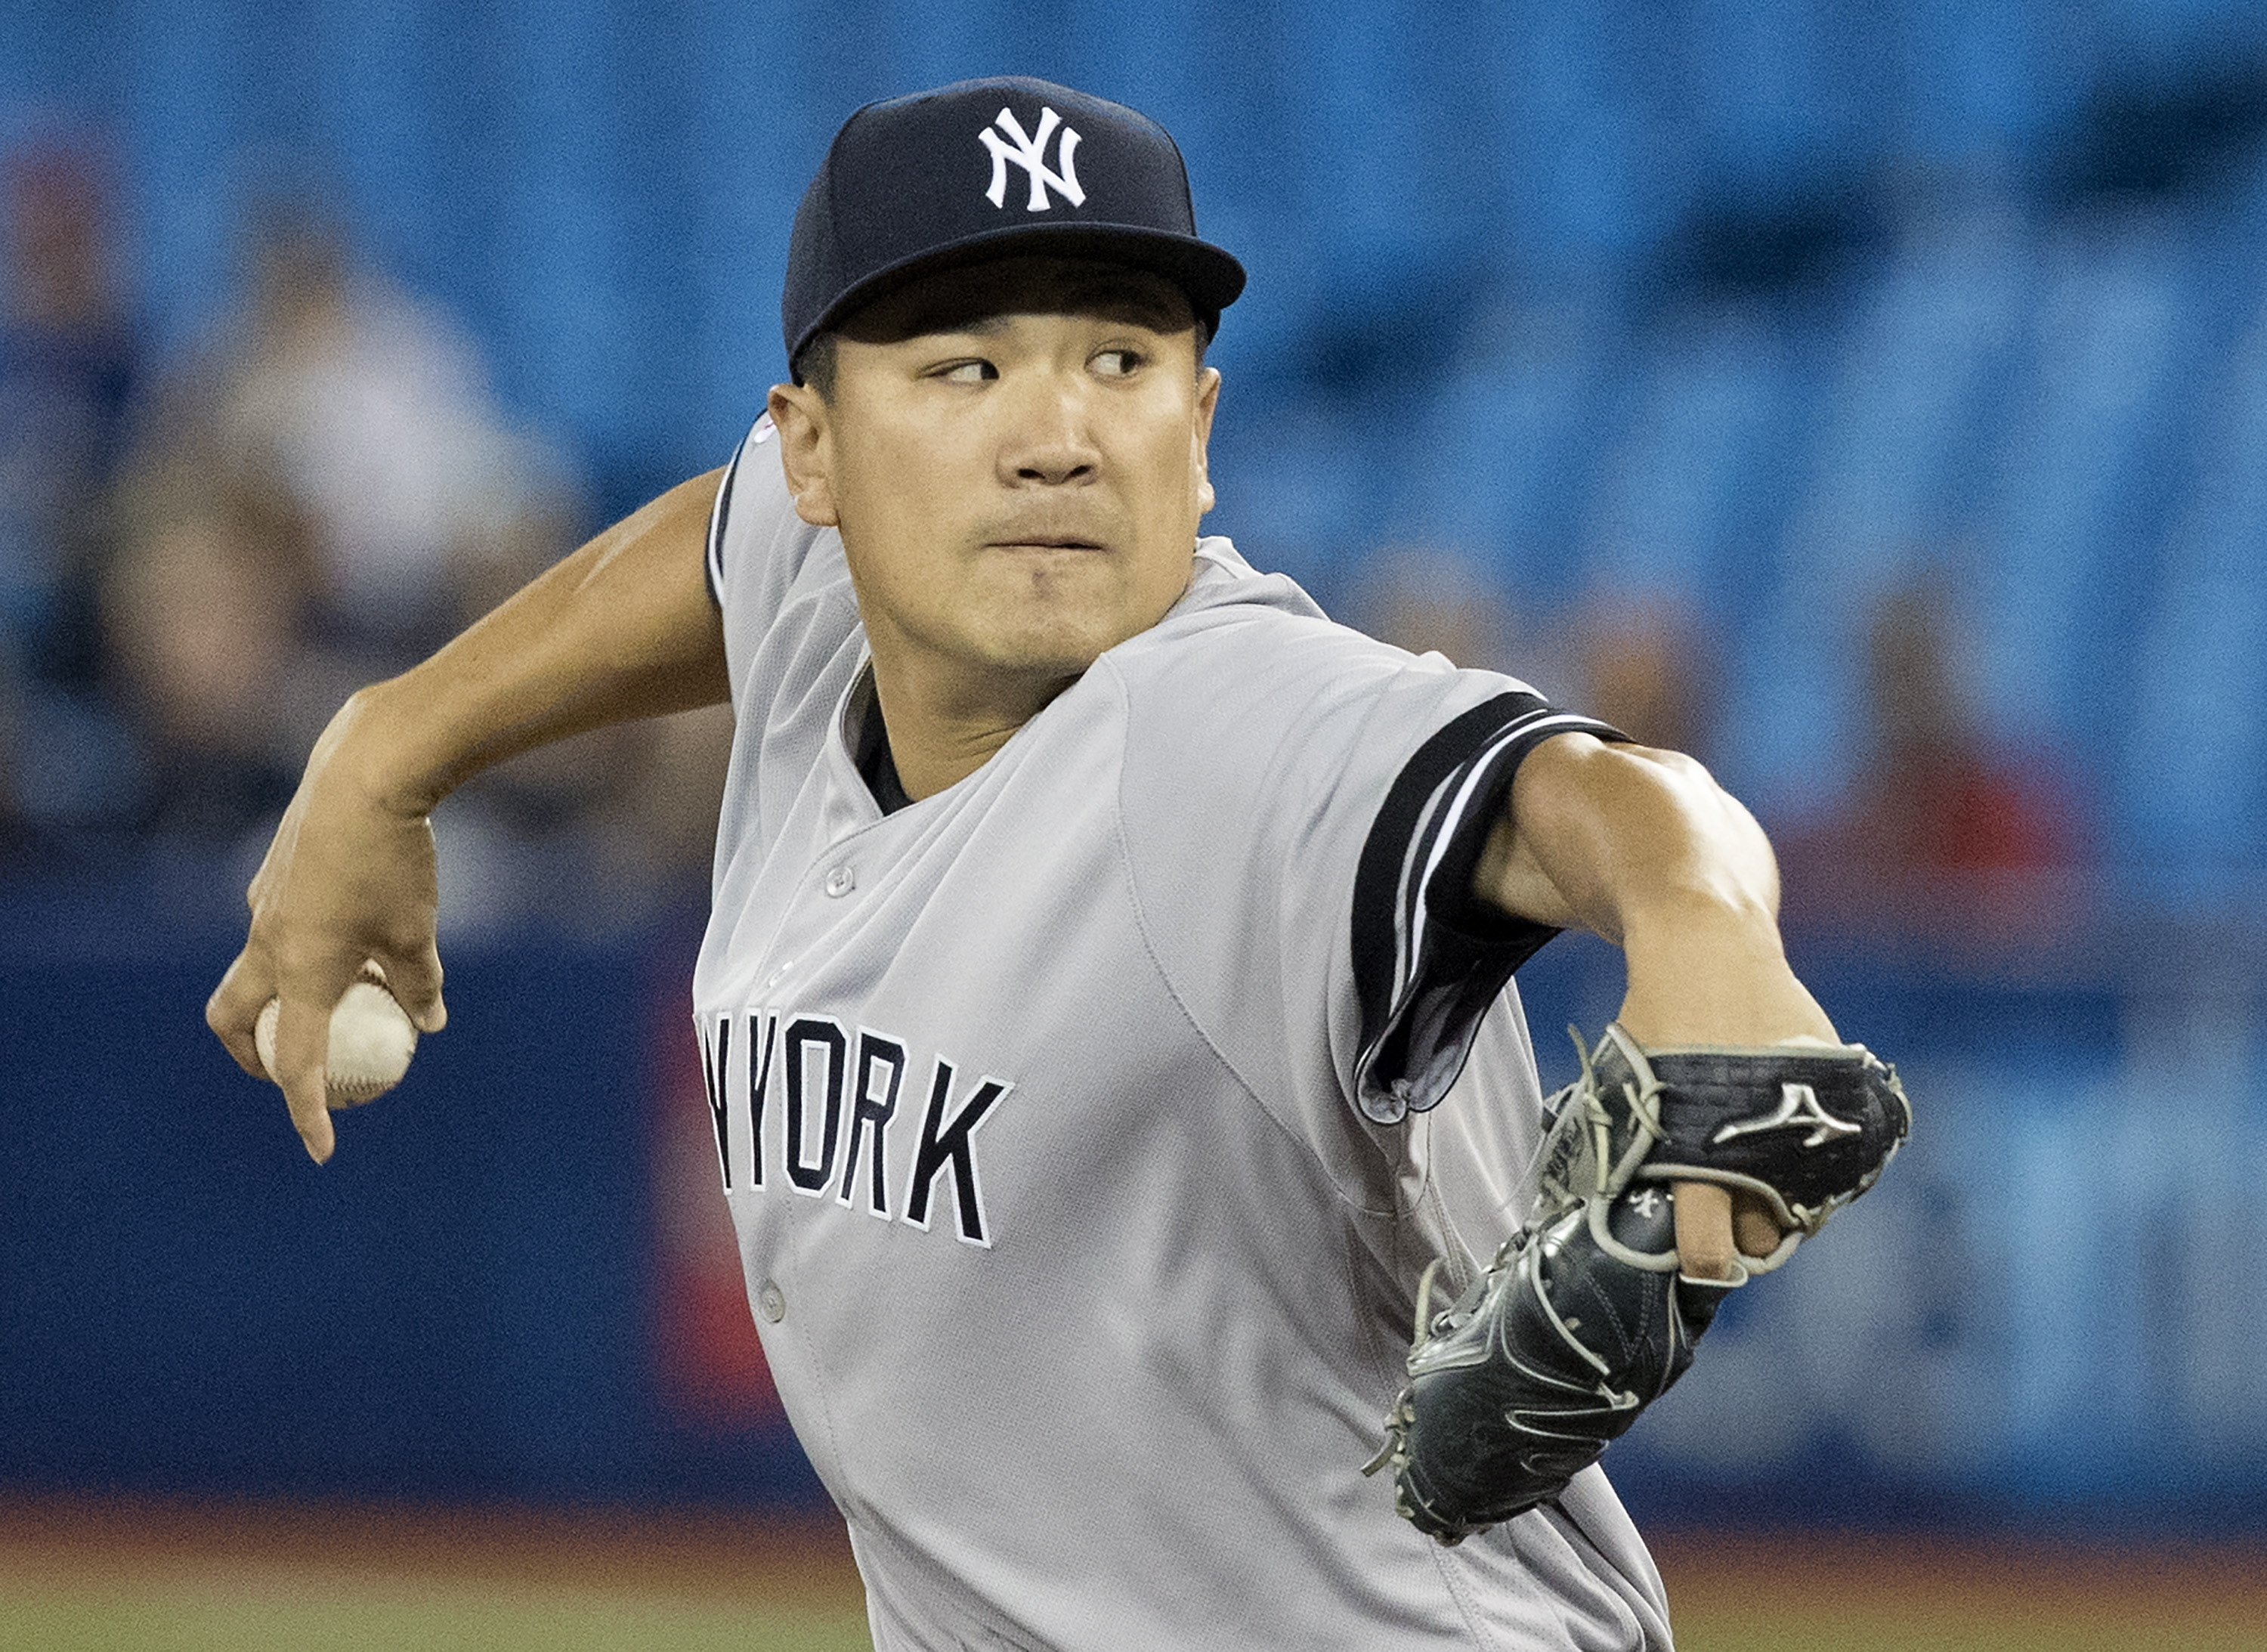 Yankees' Tanaka on paternity list; will pitch Monday vs Mets